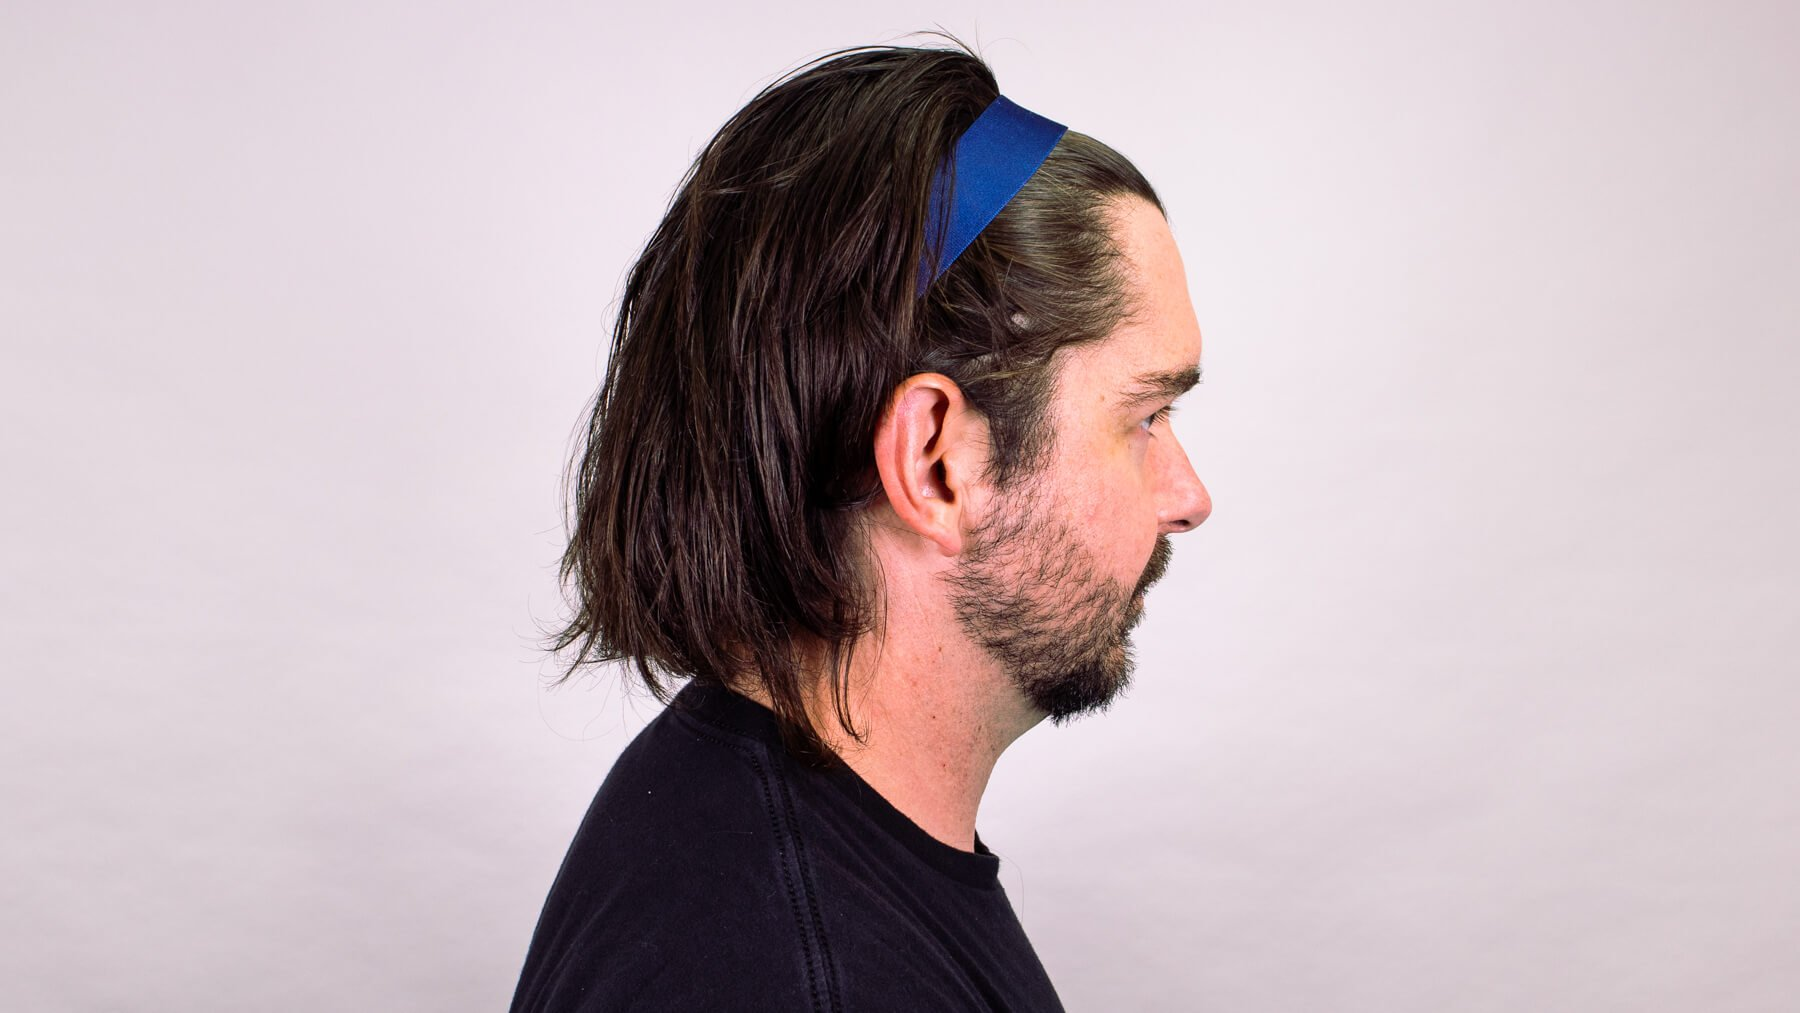 Thin headband with awkward stage hairstyle side profile view